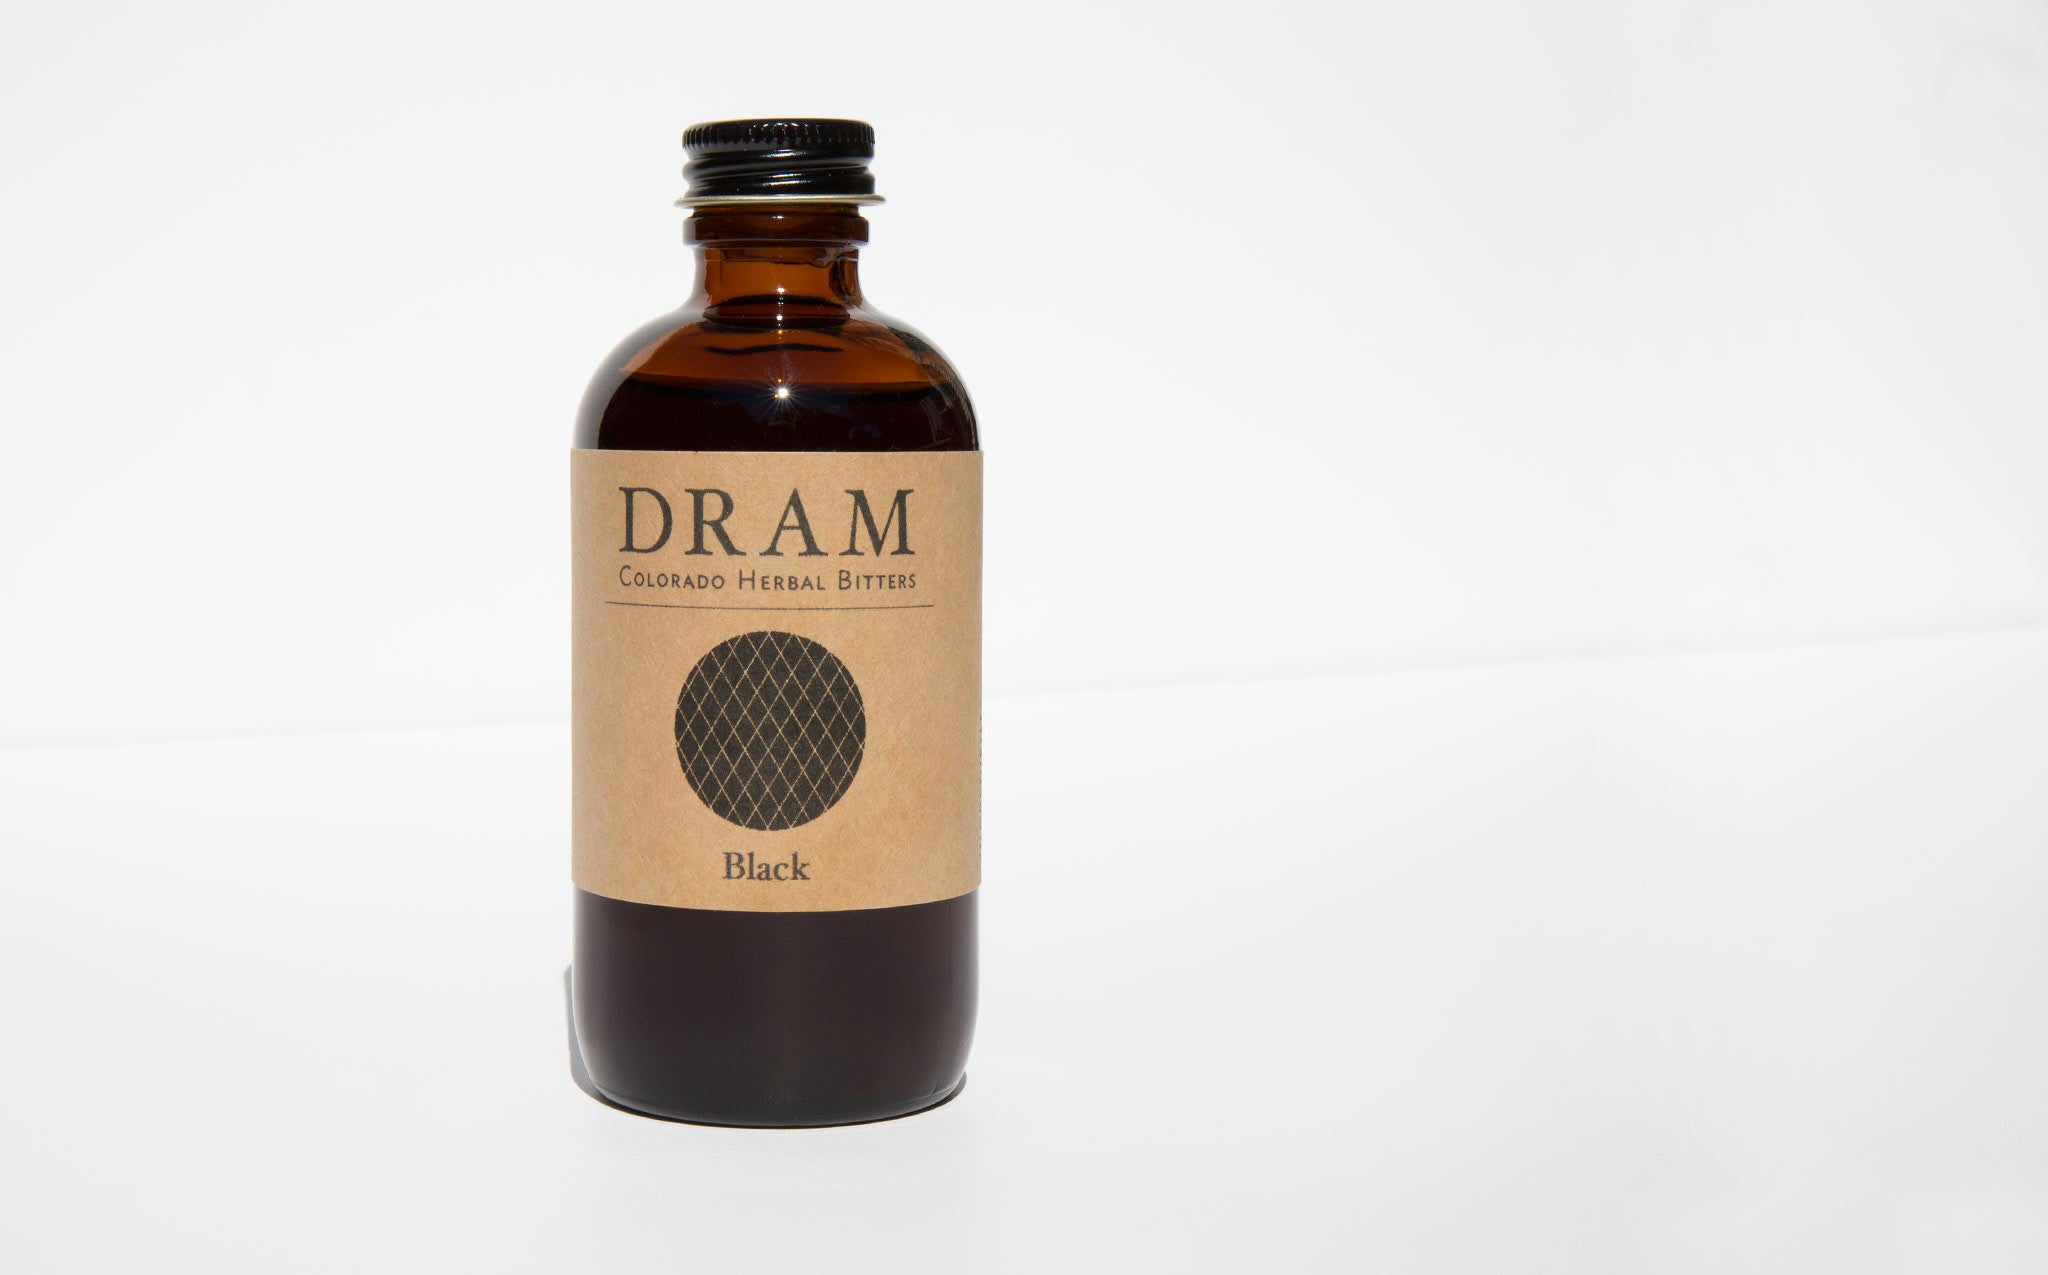 Dram Apothecary Black Bitters